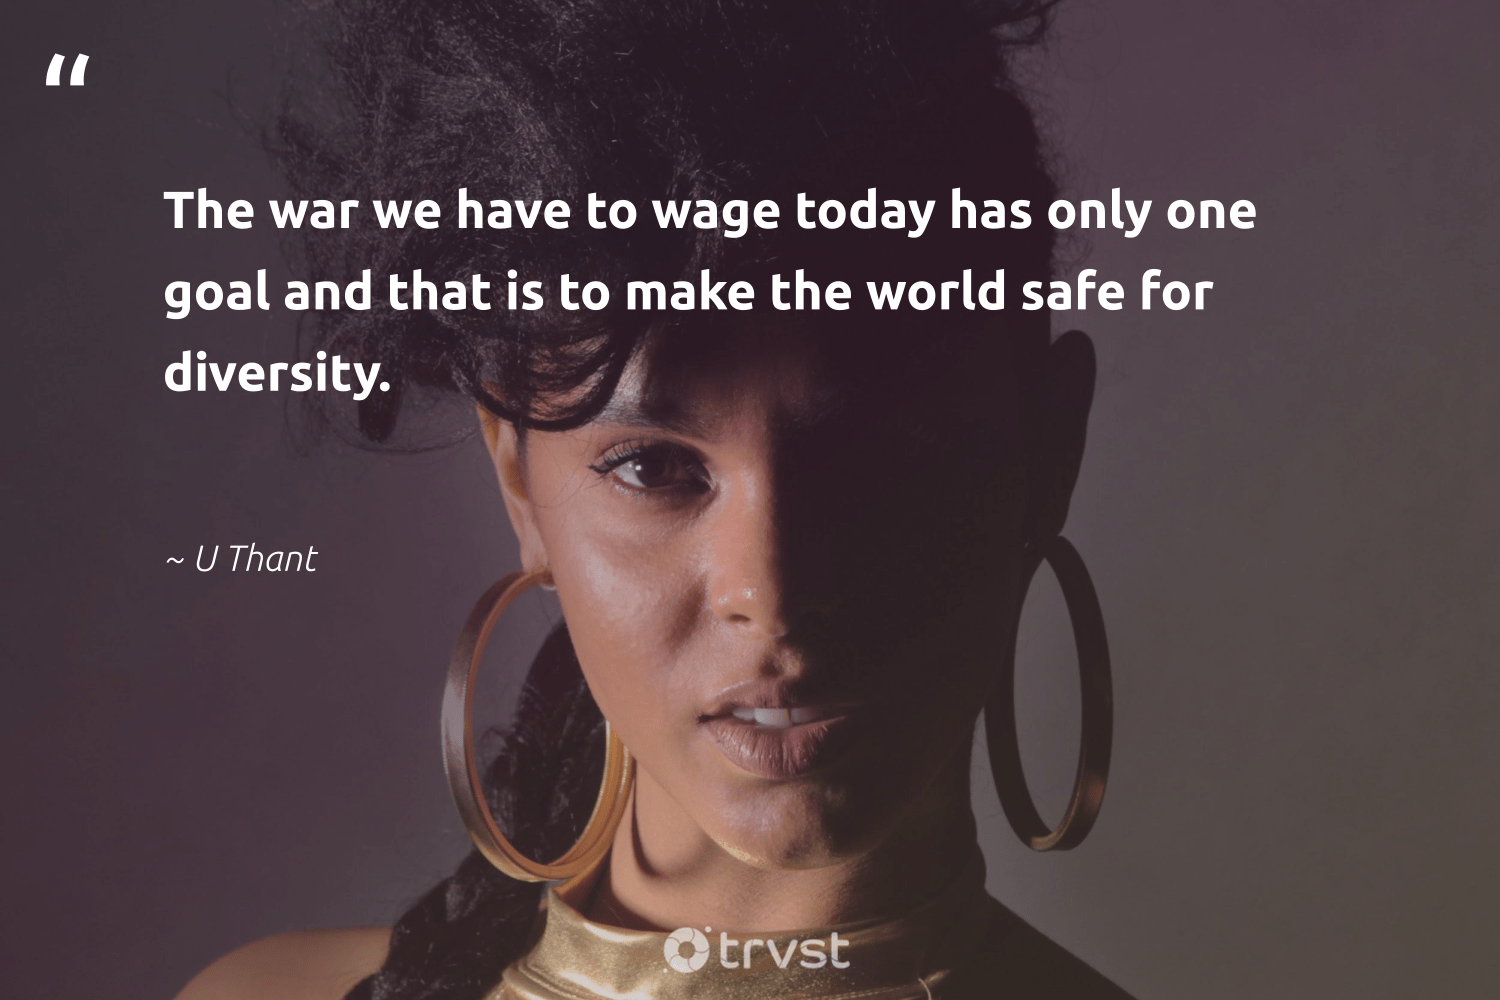 """The war we have to wage today has only one goal and that is to make the world safe for diversity.""  - U Thant #trvst #quotes #diversity #discrimination #representationmatters #socialgood #weareallone #changetheworld #inclusion #socialchange #giveback #bethechange"